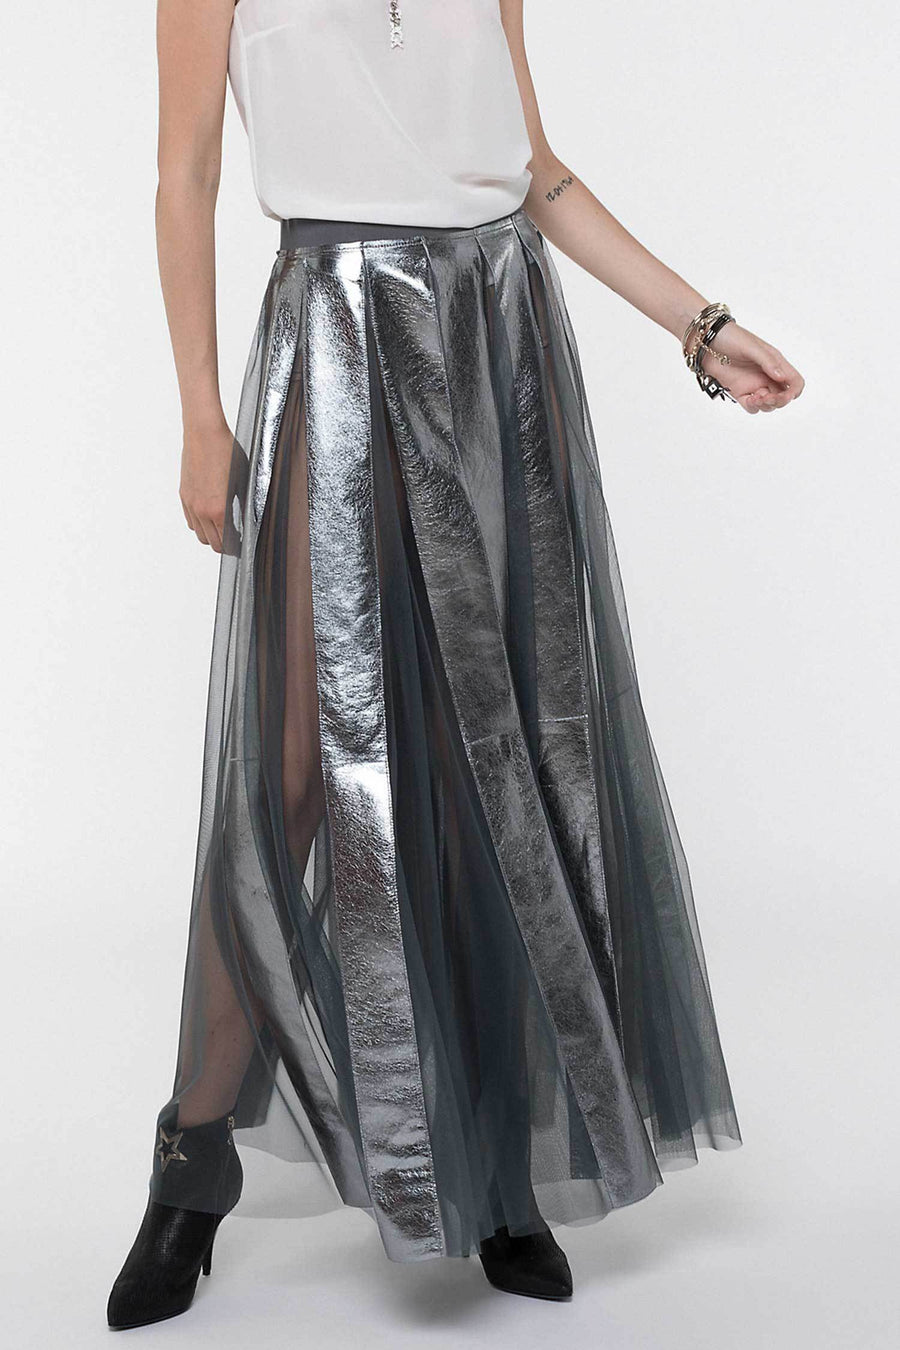 cheap for discount 9f33c c717f Skirt With Metallic Effect Inserts | FINAL SALE by Patrizia ...